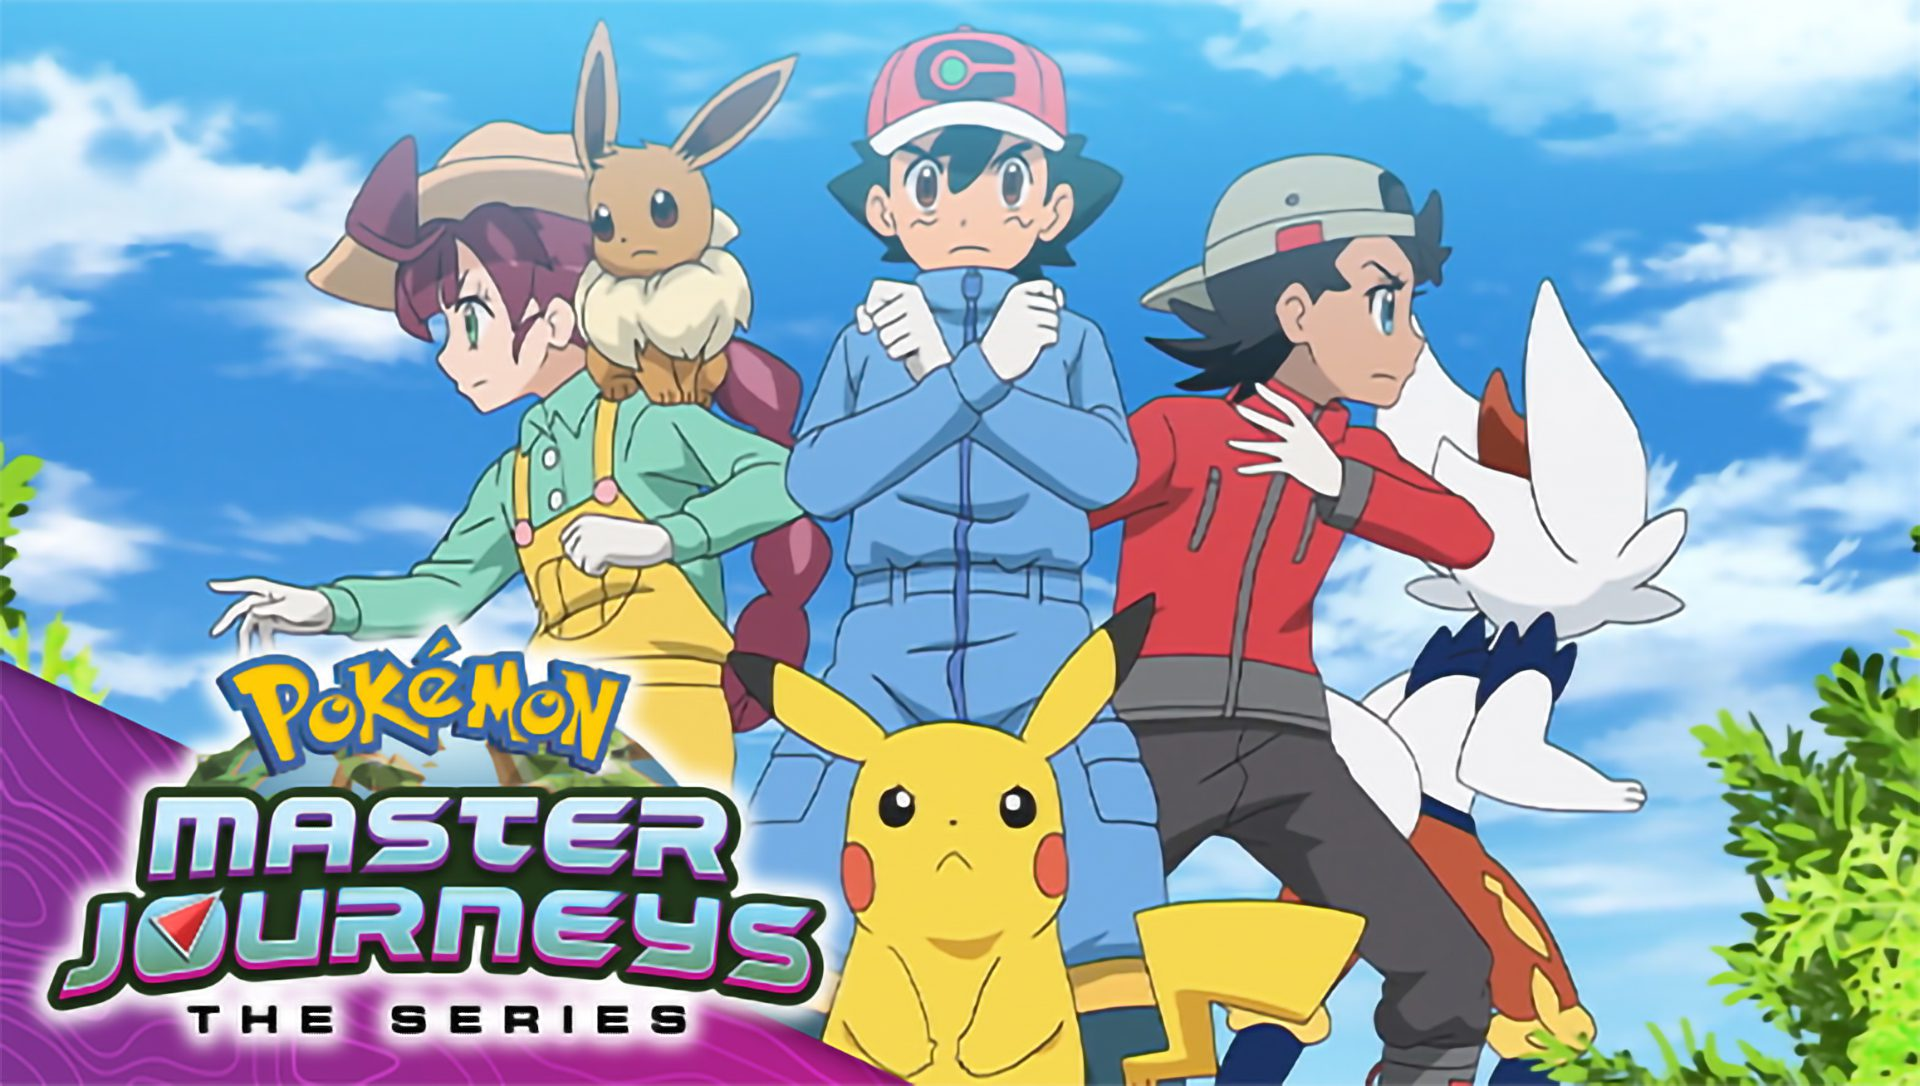 Pokemon Master Journeys Part 2 Release Date & Expectations